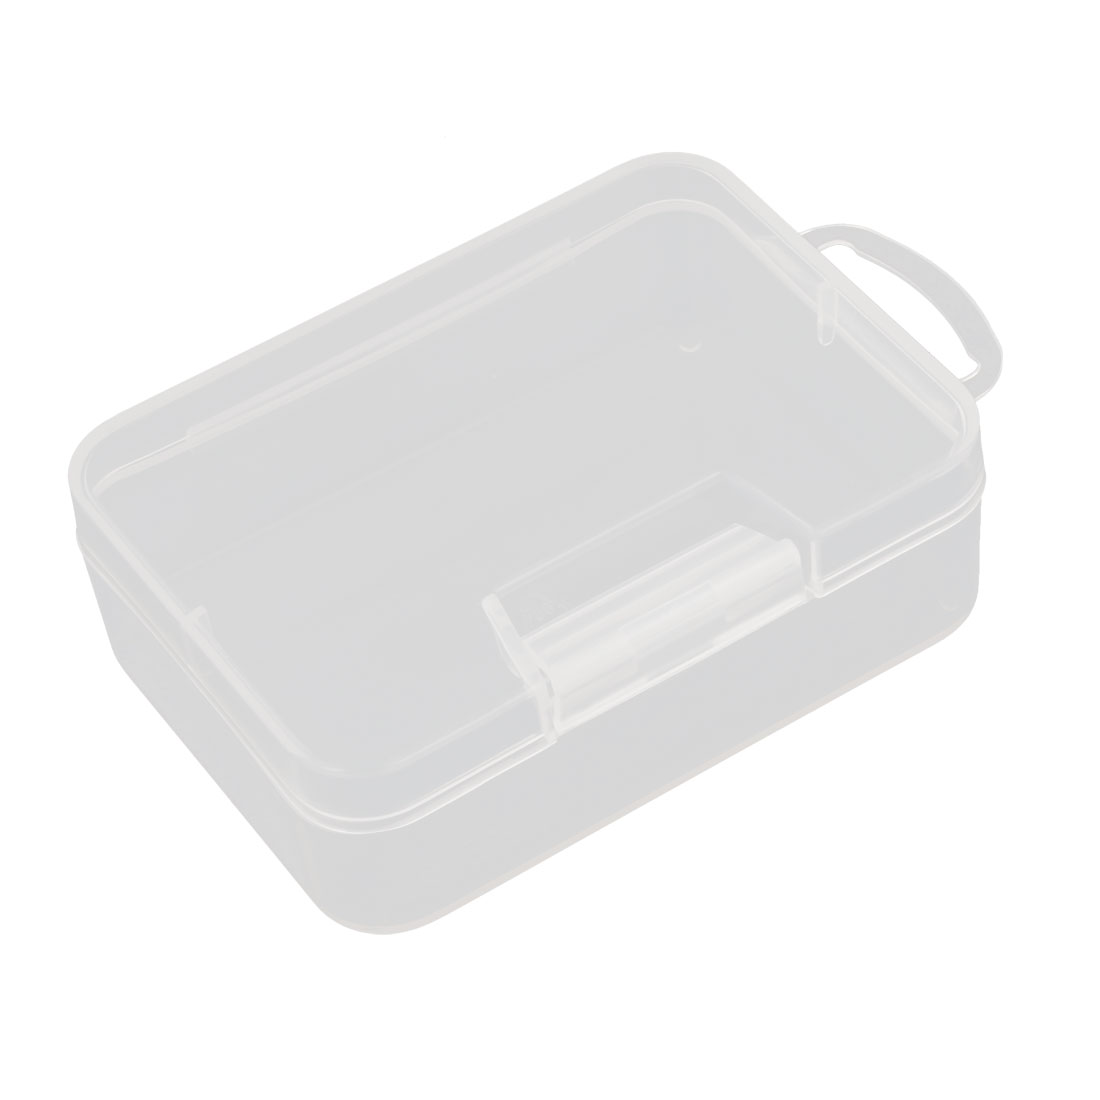 9.2cm x 6.7cm White Plastic Components Storage Enclosure Case Box